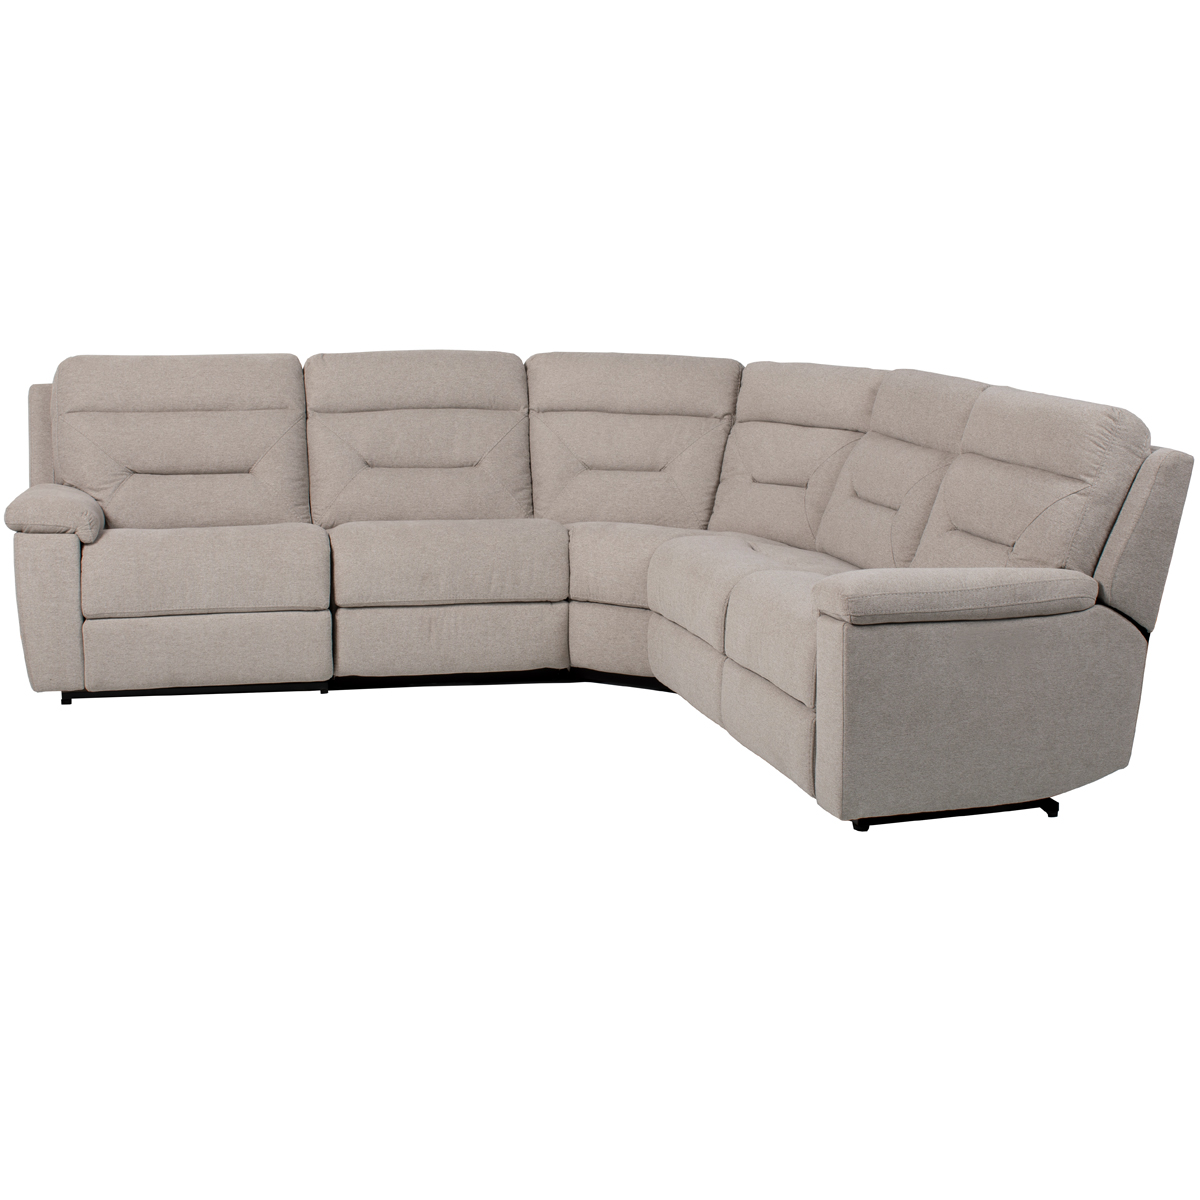 Cordoba 5 Piece Manual Reclining Sectional